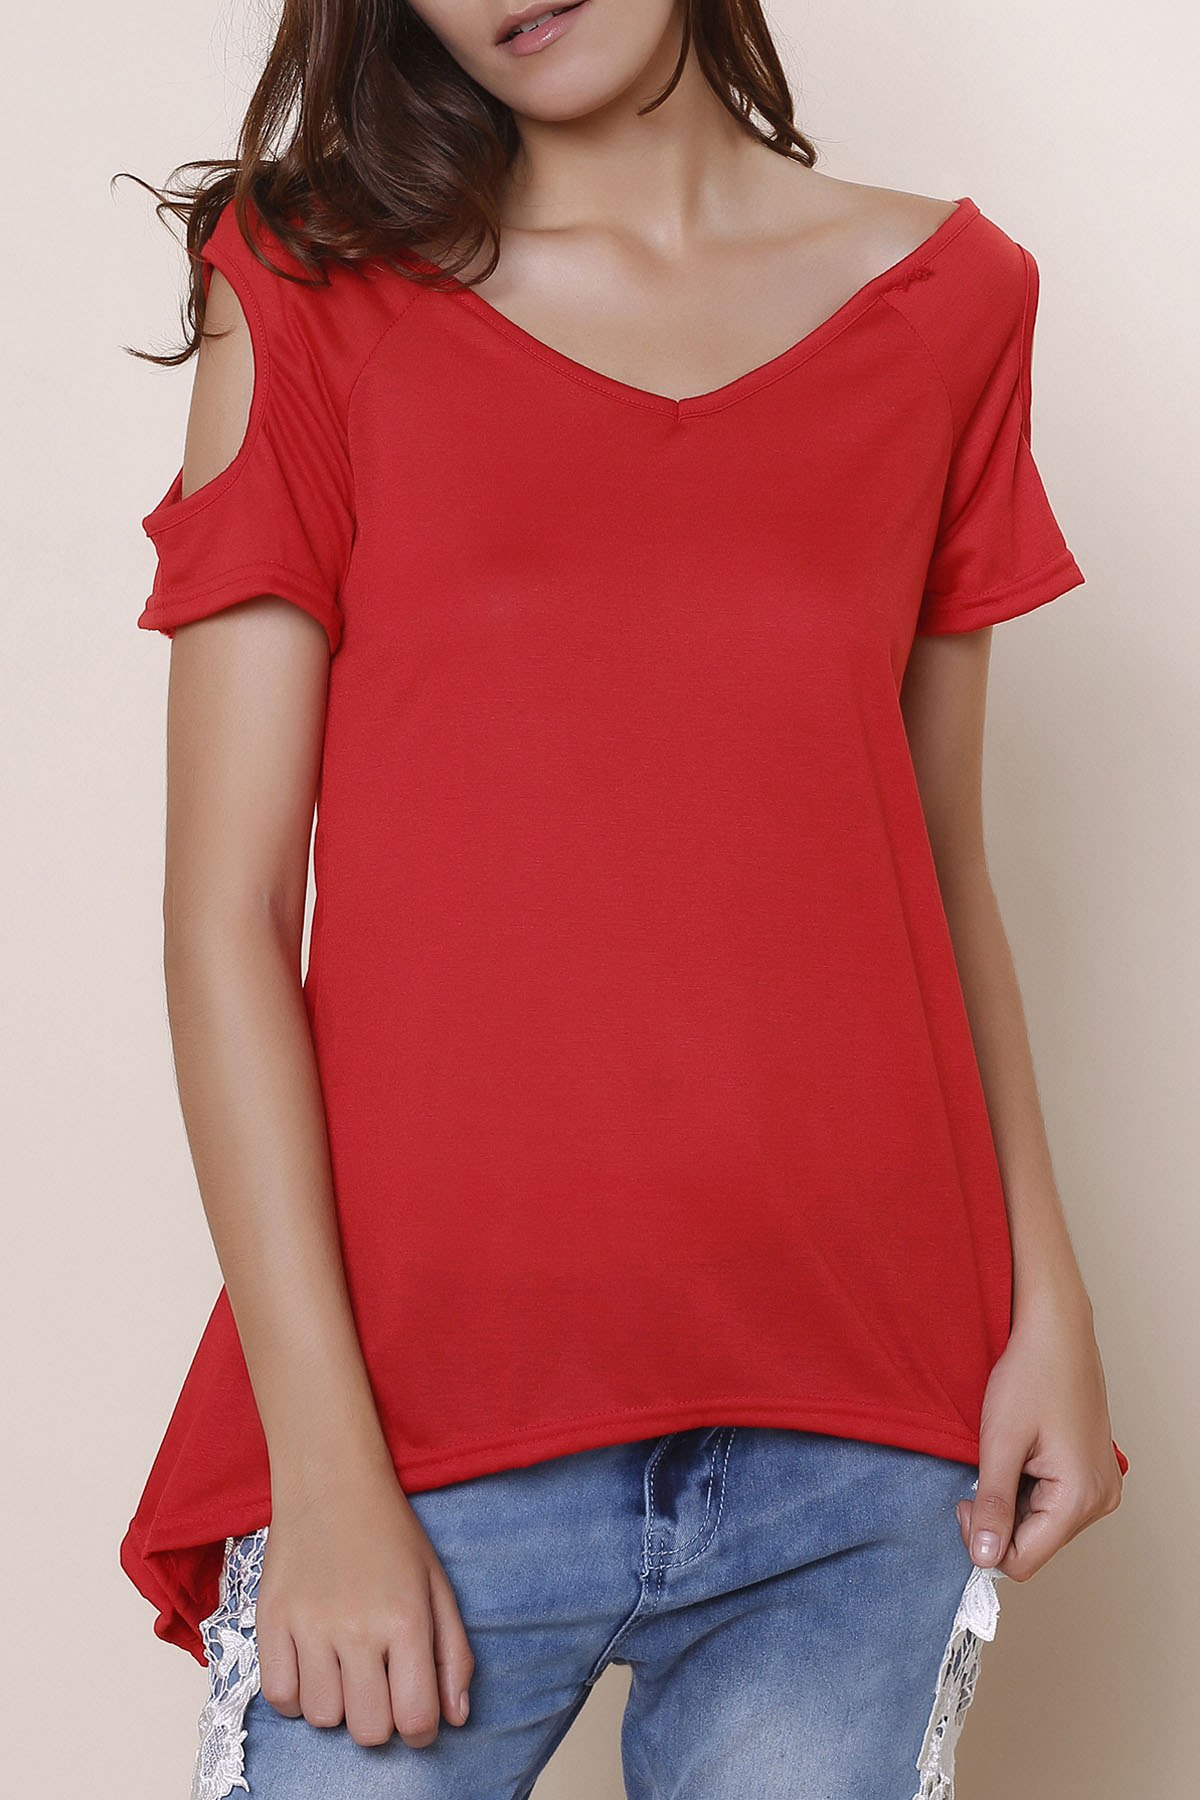 Stylish V-Neck Solid Color Cut Out Short Sleeve Women's T-Shirt - RED S